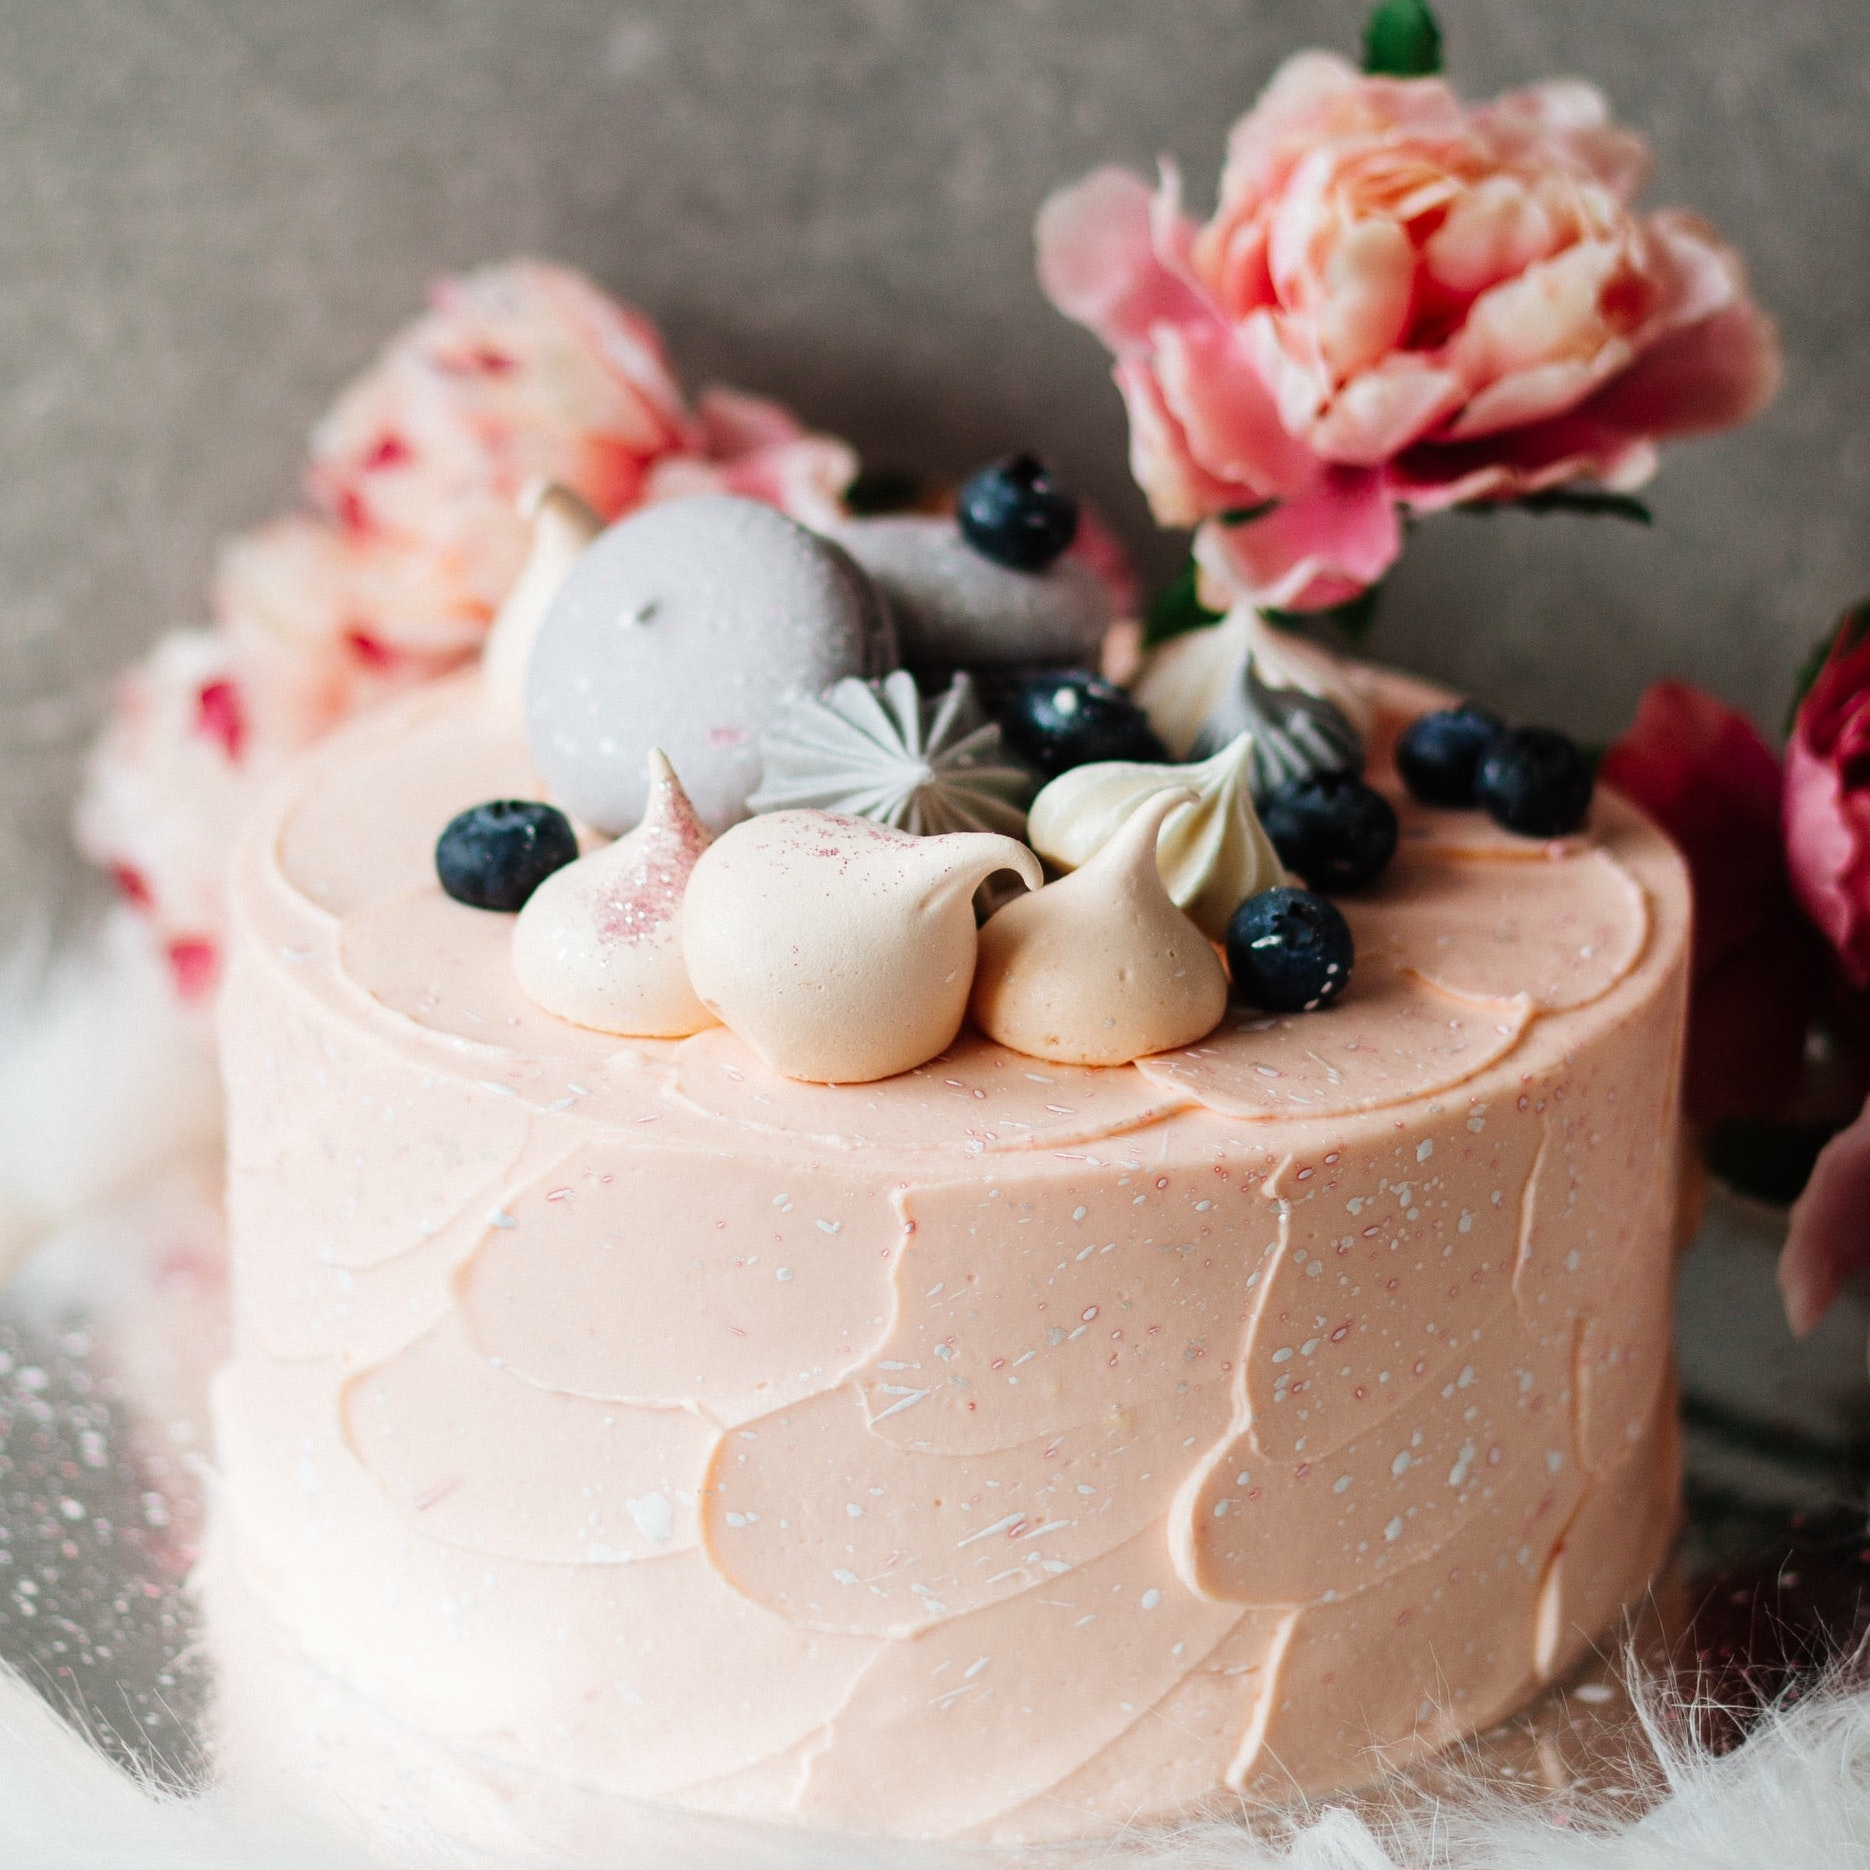 image of birthday cake and flowers